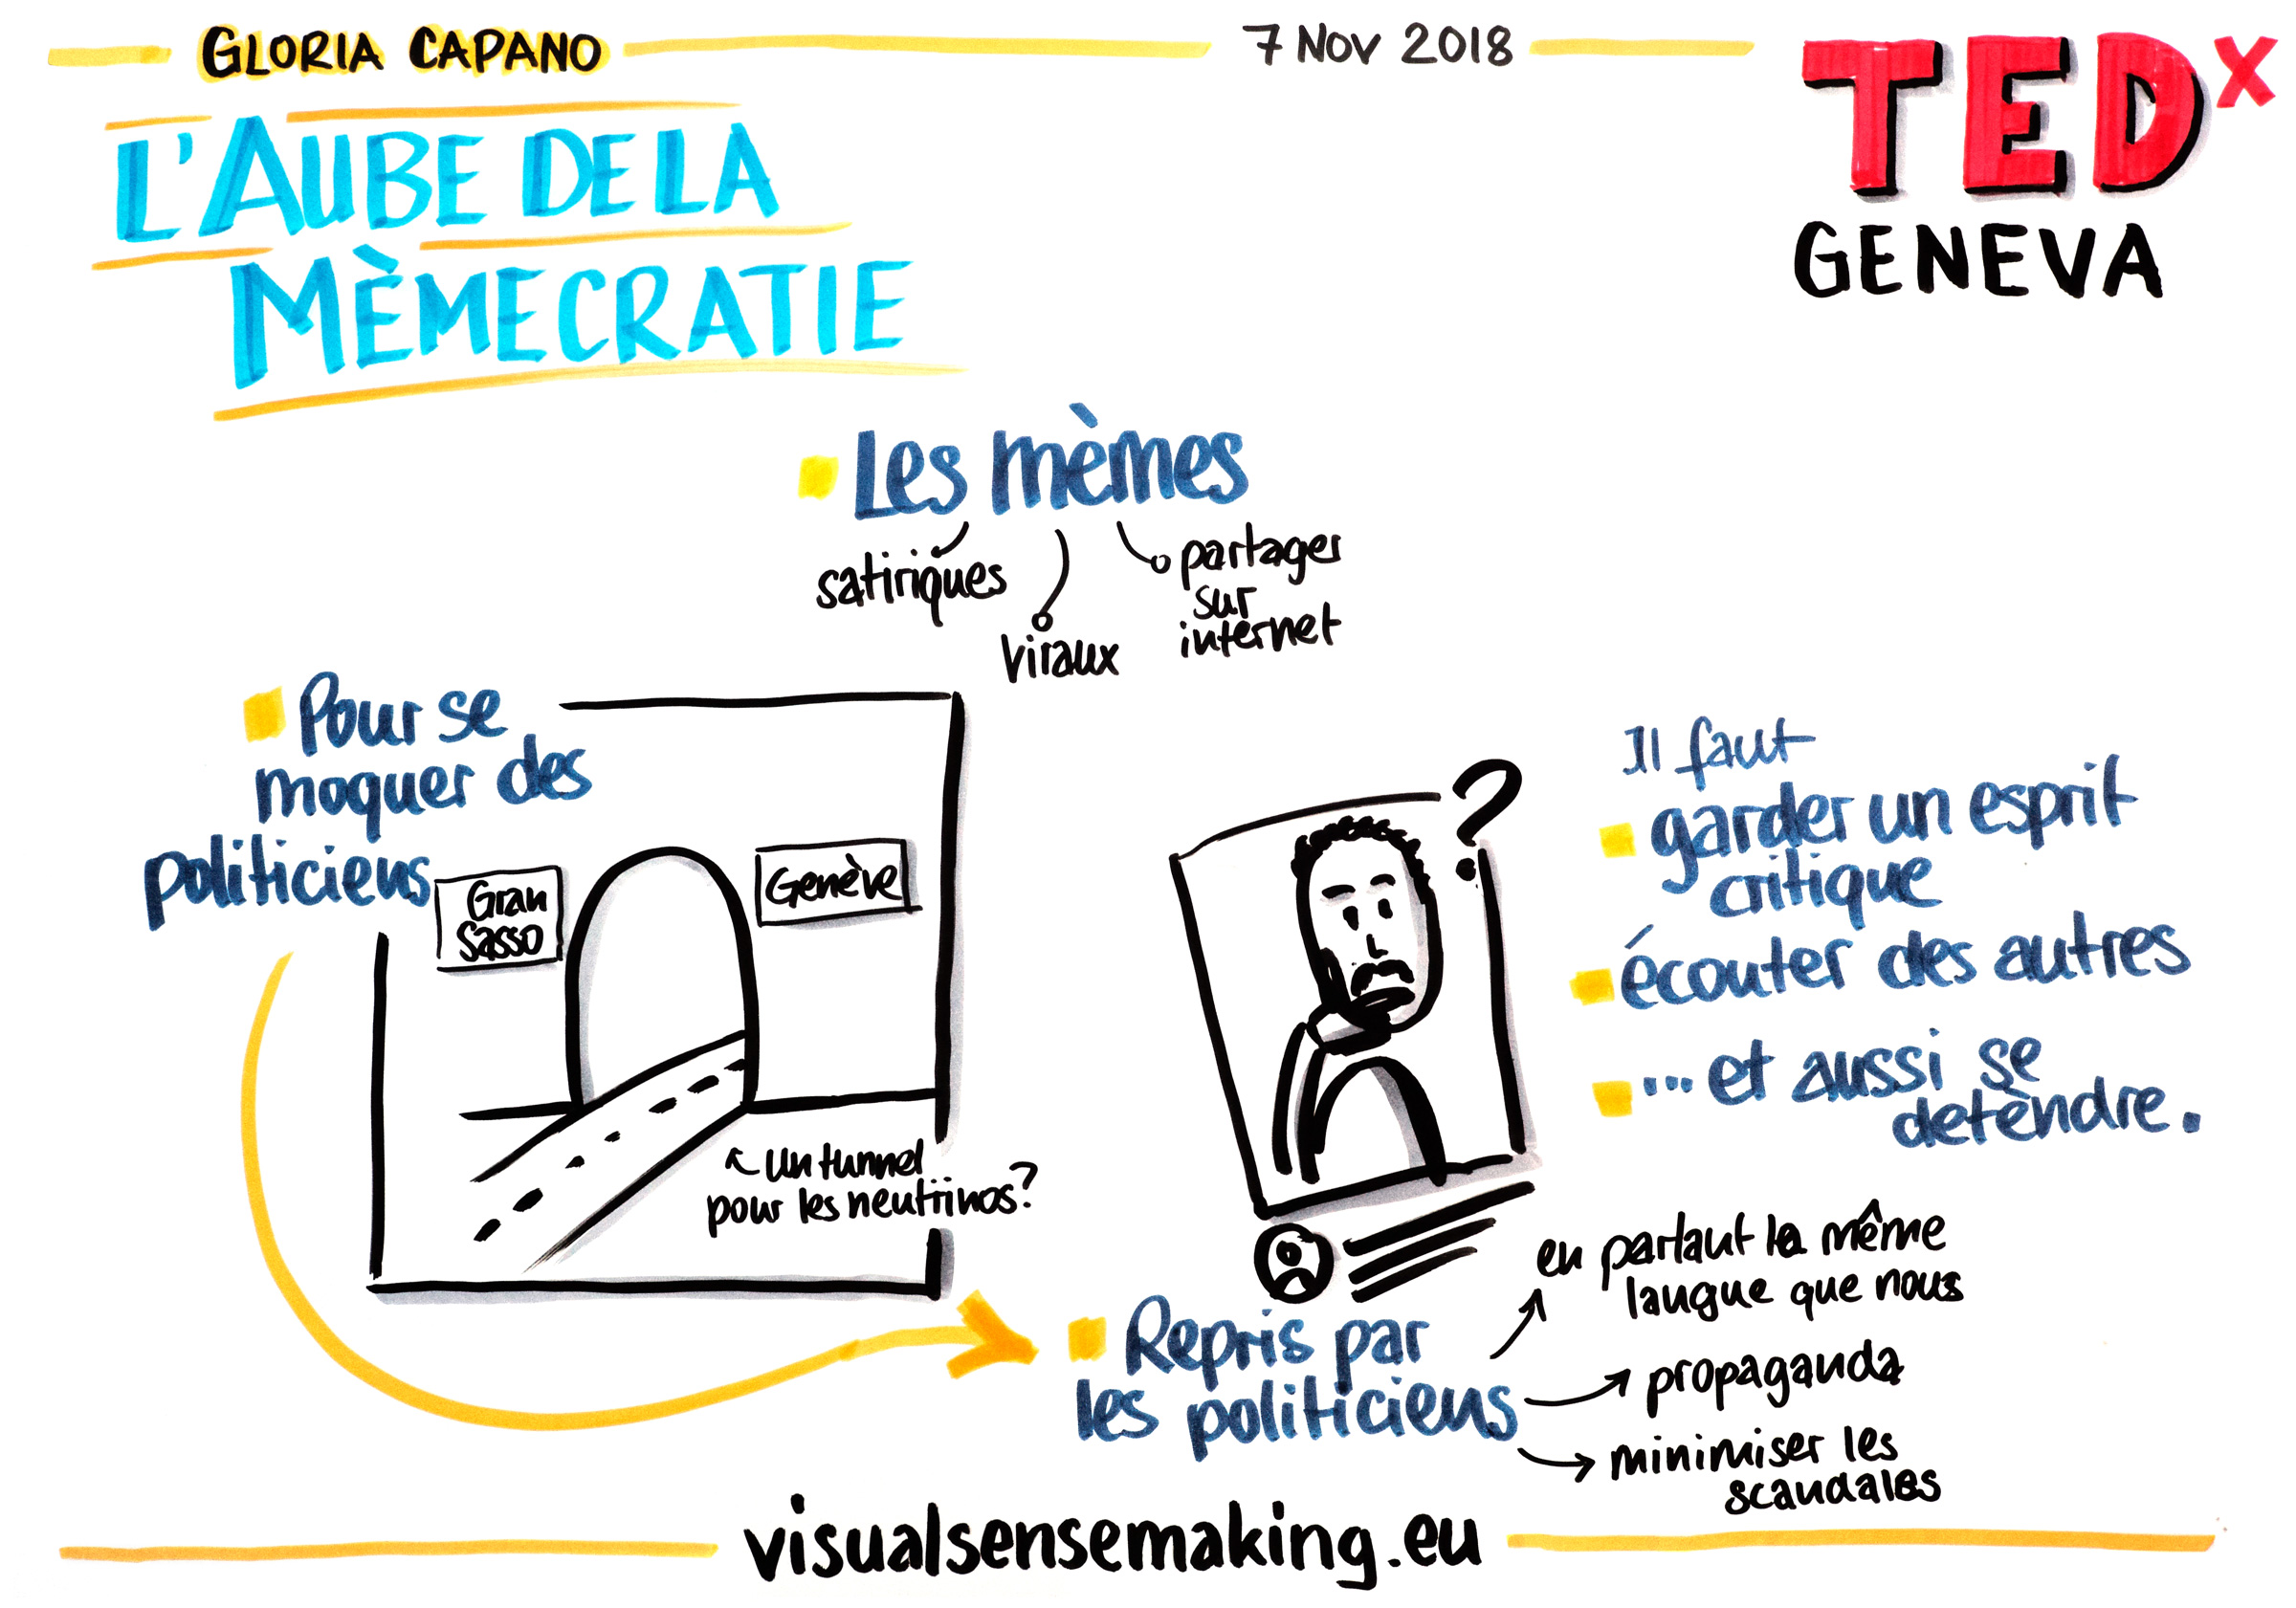 Visual summary of the talk 'L'aube de la mèmecratie'